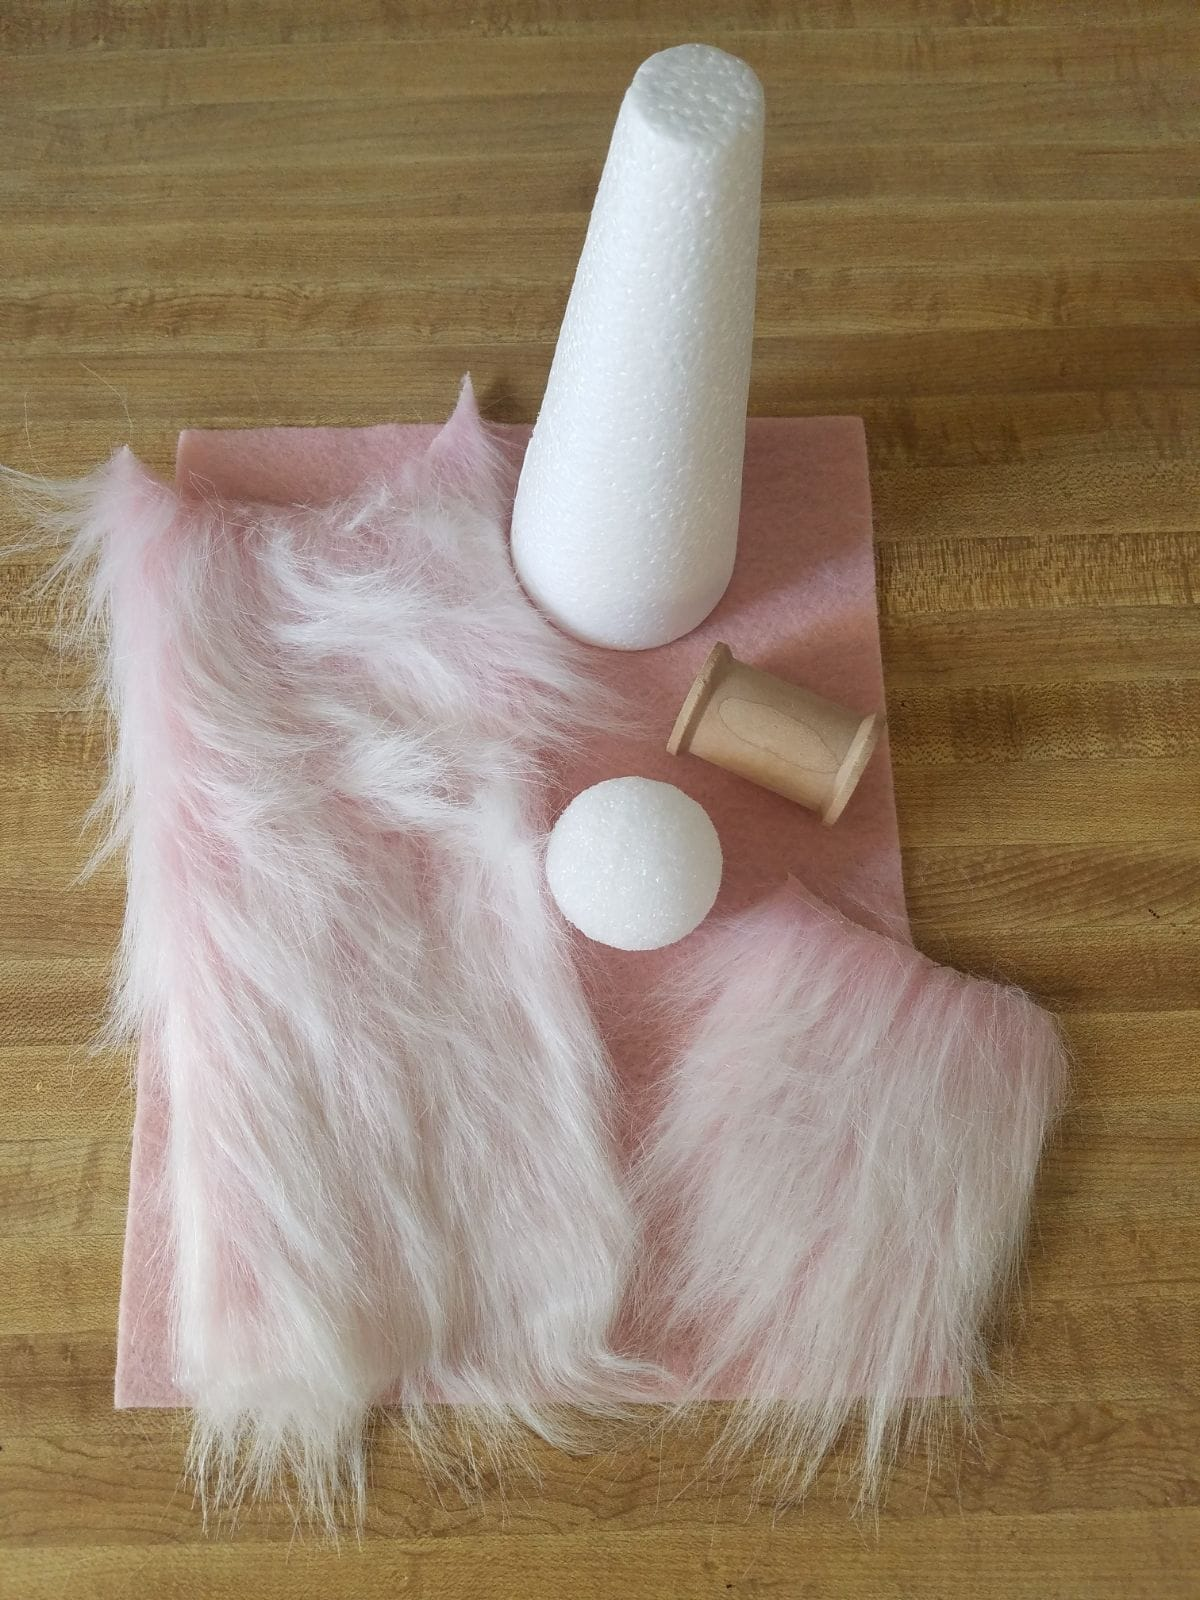 On a wooden table sits a pink ssquare of fabric. On top of the fabric are 2 pieces of faux fur, a ping pong ball, a reel of cotton and a yarn cone